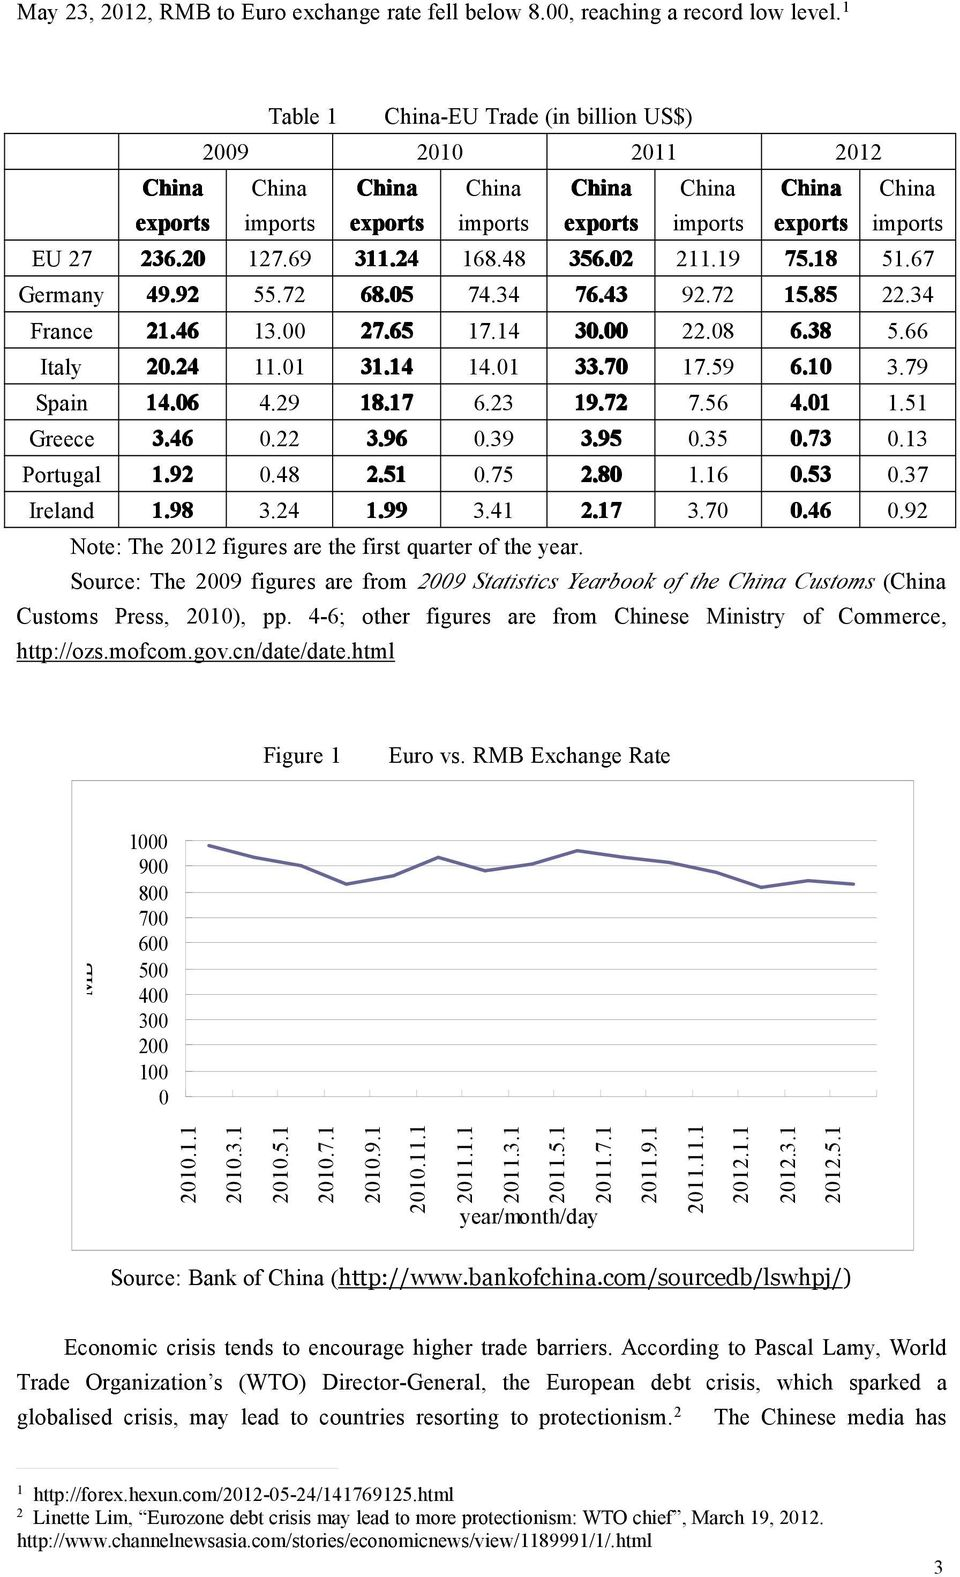 Source: The 009 figures are from 009 Statistics Yearbook of the Customs ( Customs Press, 00), pp. -6; other figures are from Chinese Ministry of Commerce, http://ozs.mofcom.gov.cn/date/date.